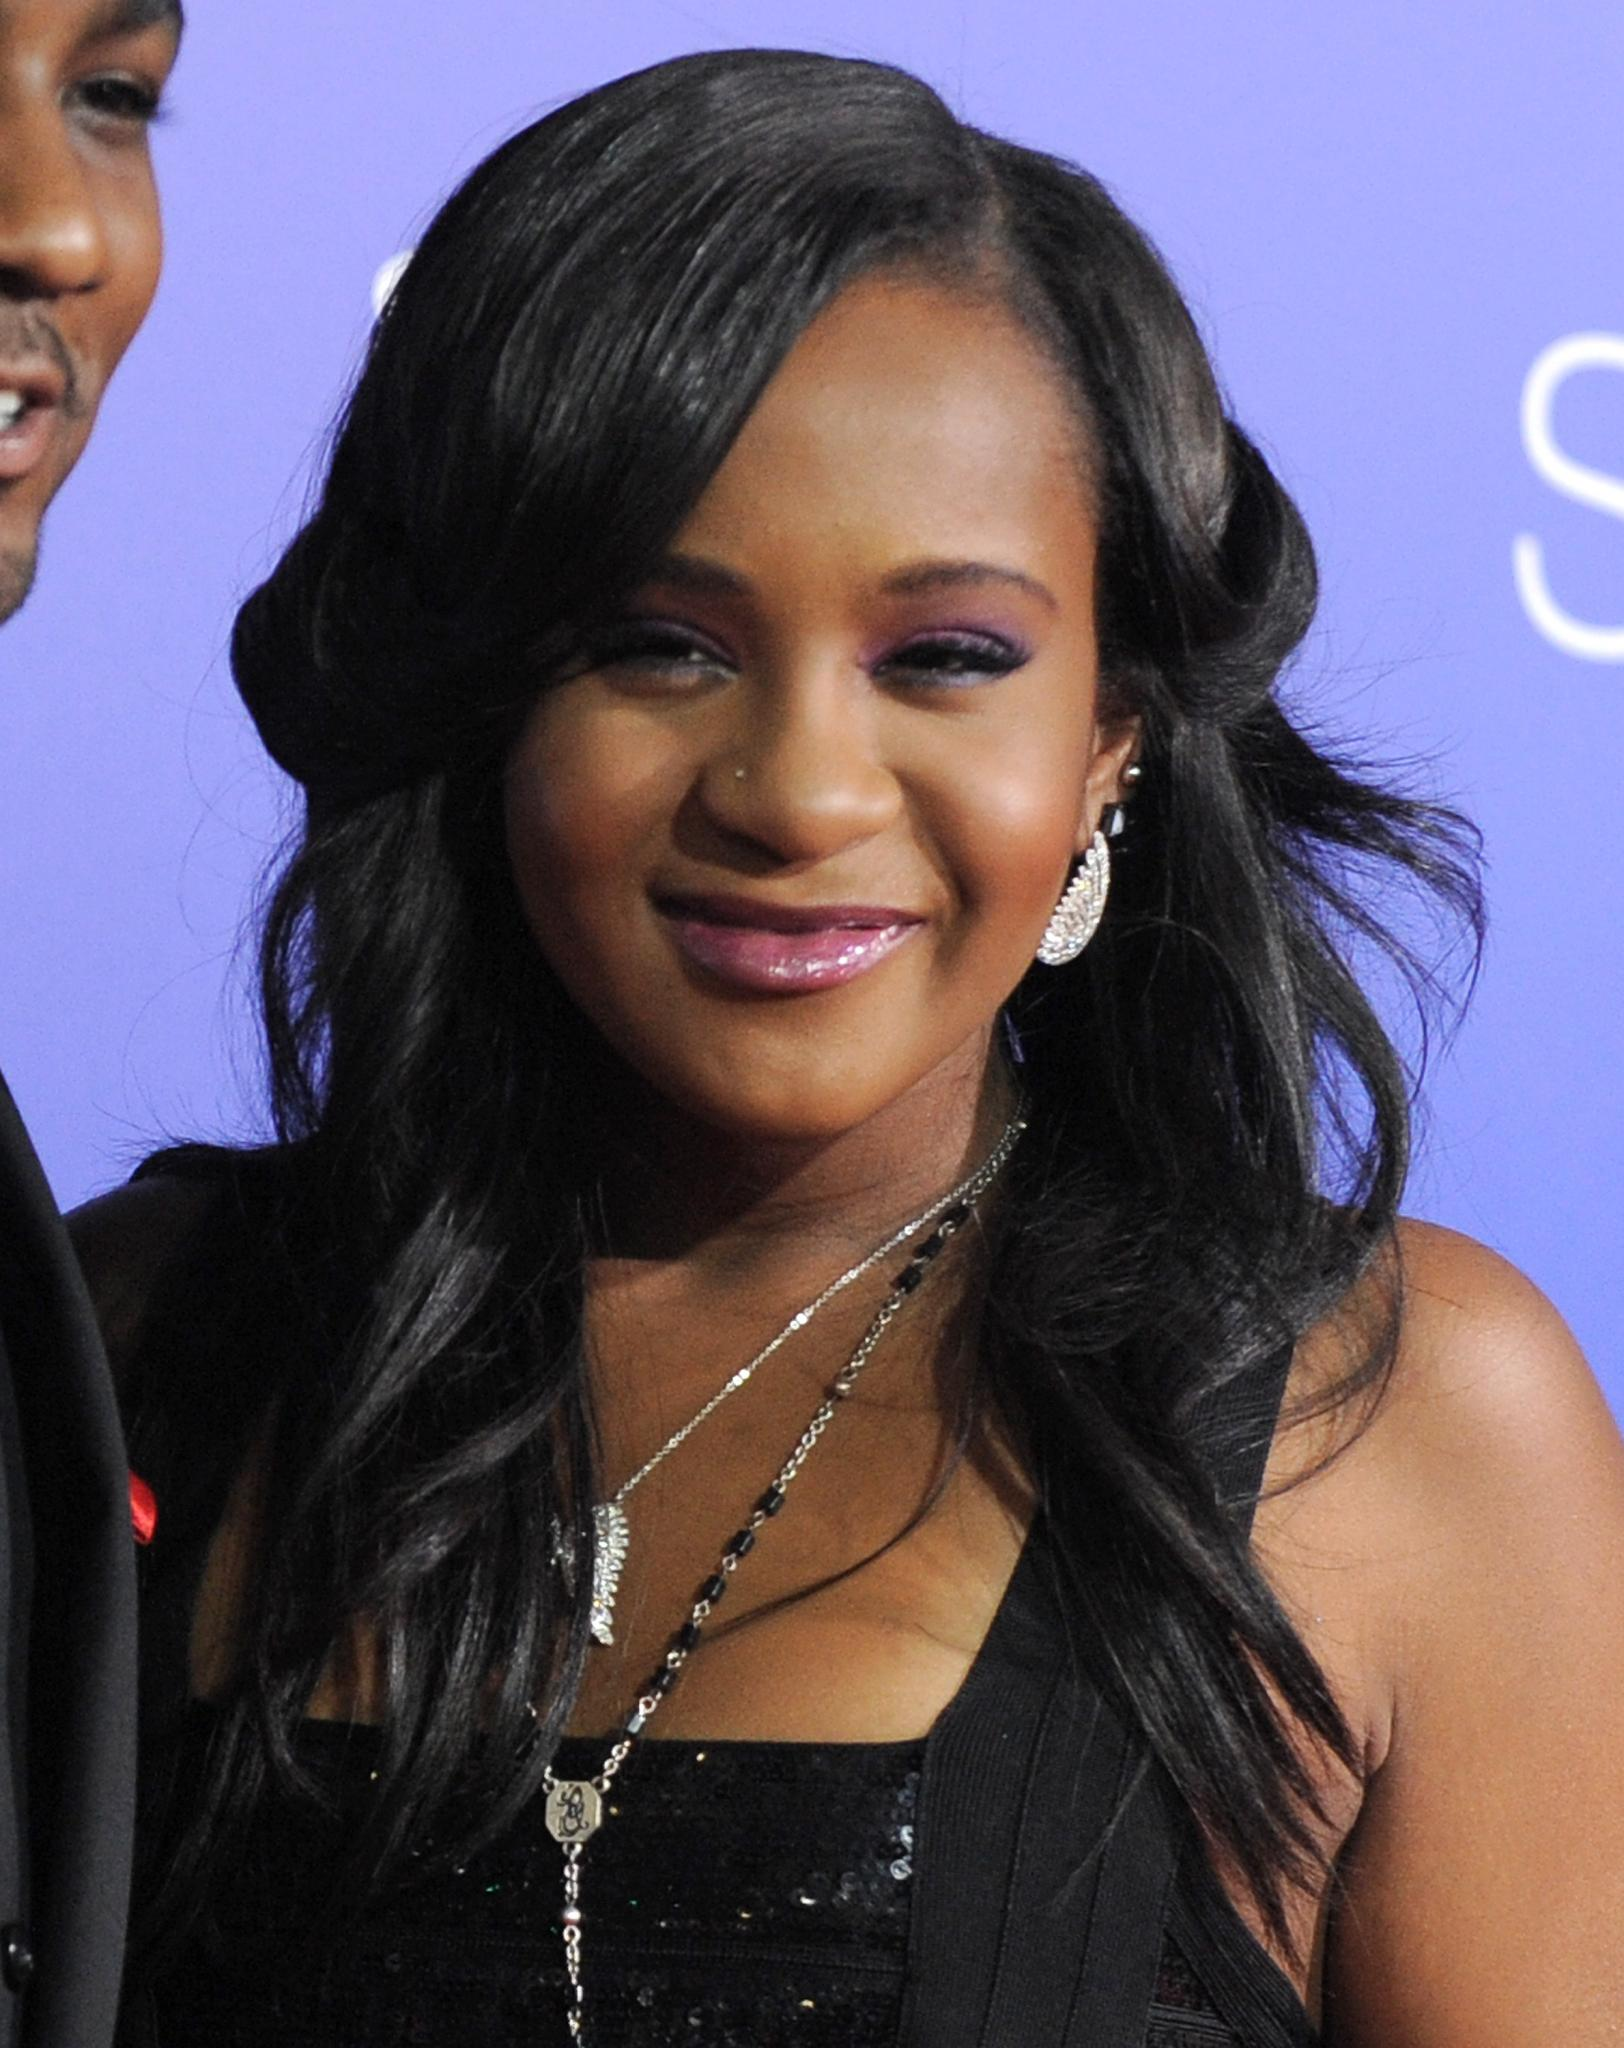 Report: Bobbi Kristina Suffered 'Violent Seizures' After Being Taken Out of Coma